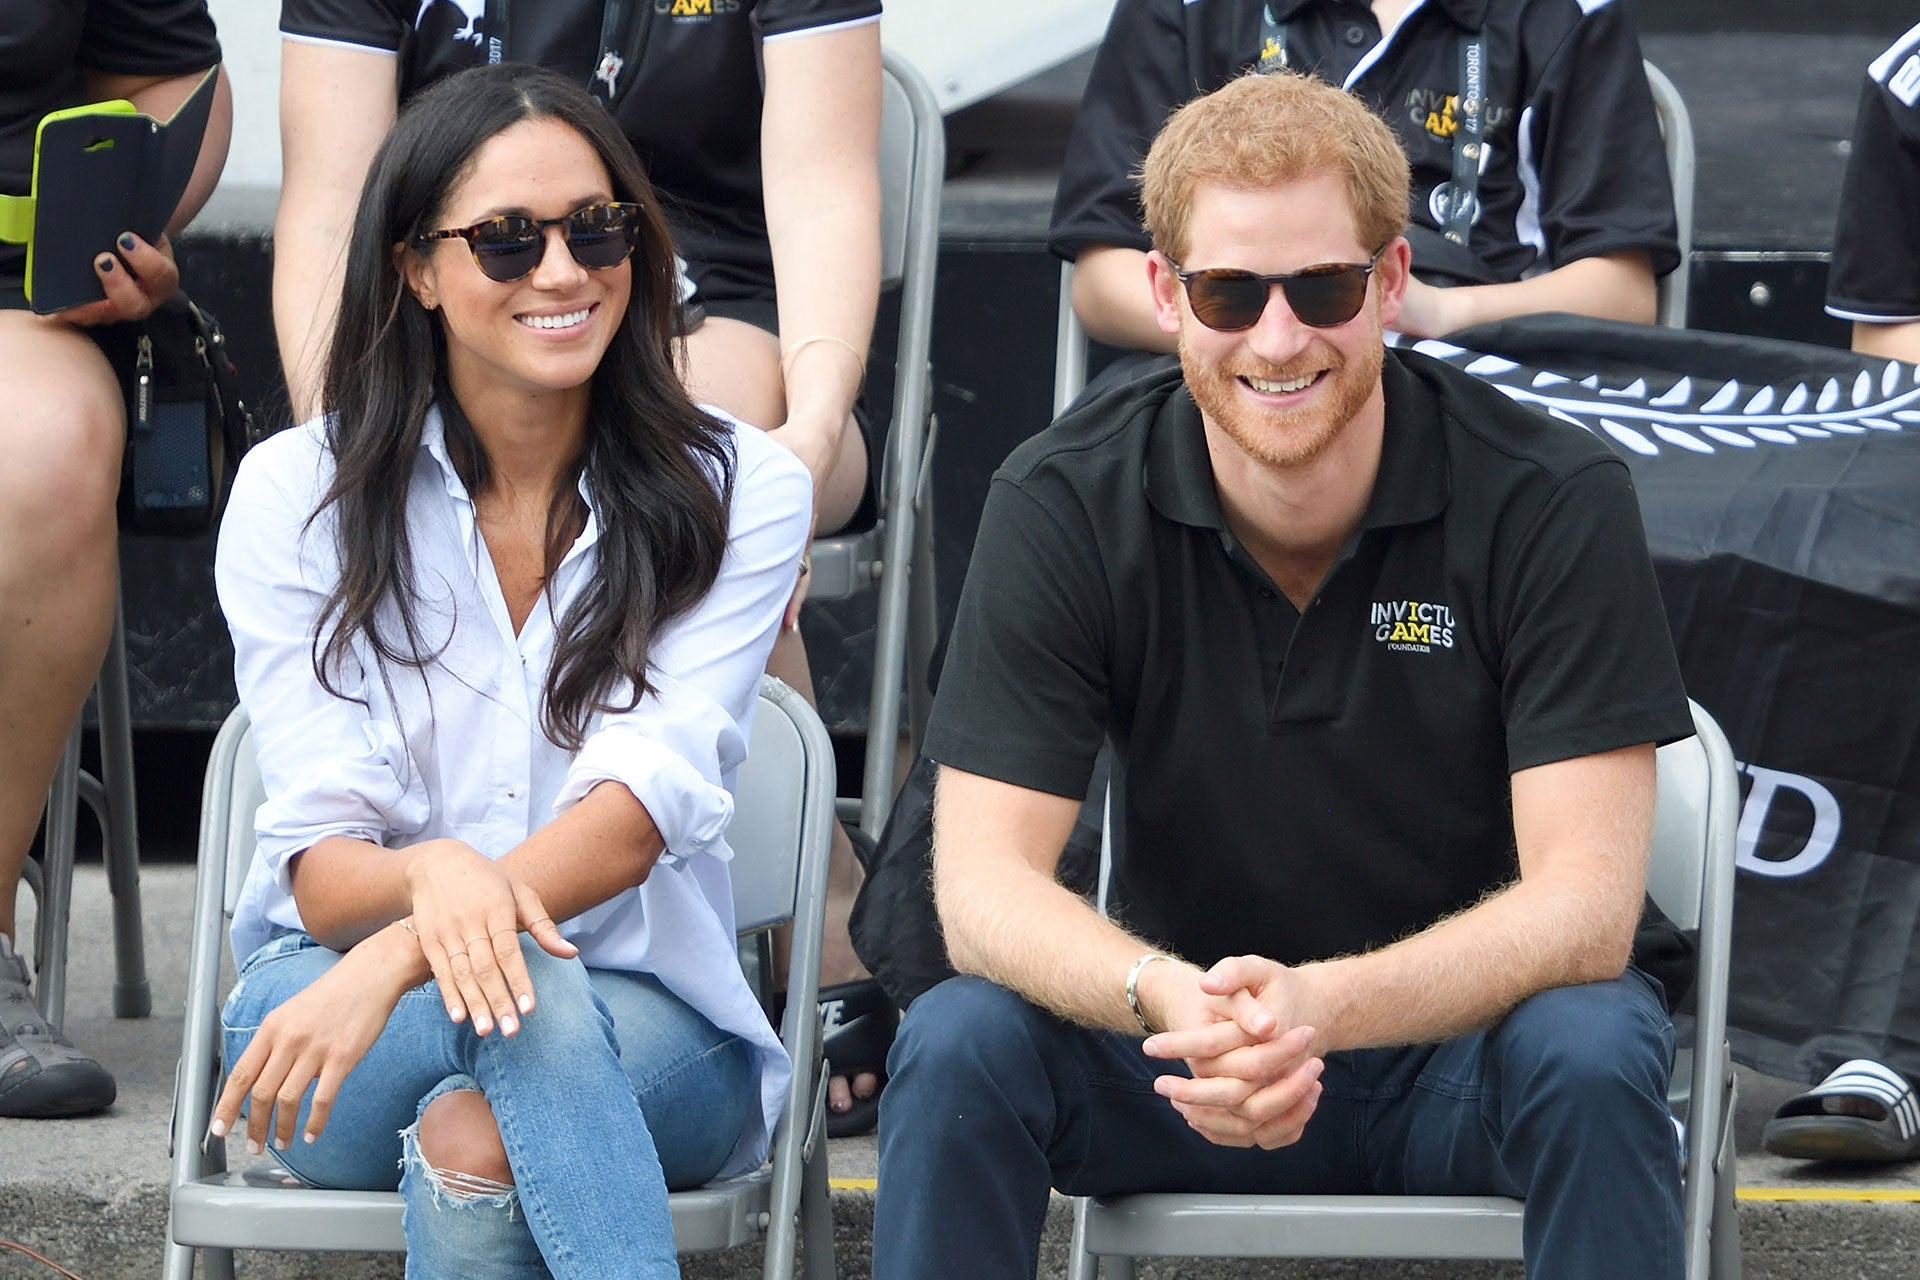 Princ Harry a Meghan Markle, Toronto, Kanada, září 2017 Autor: Karwai Tang/WireImage/Getty Images